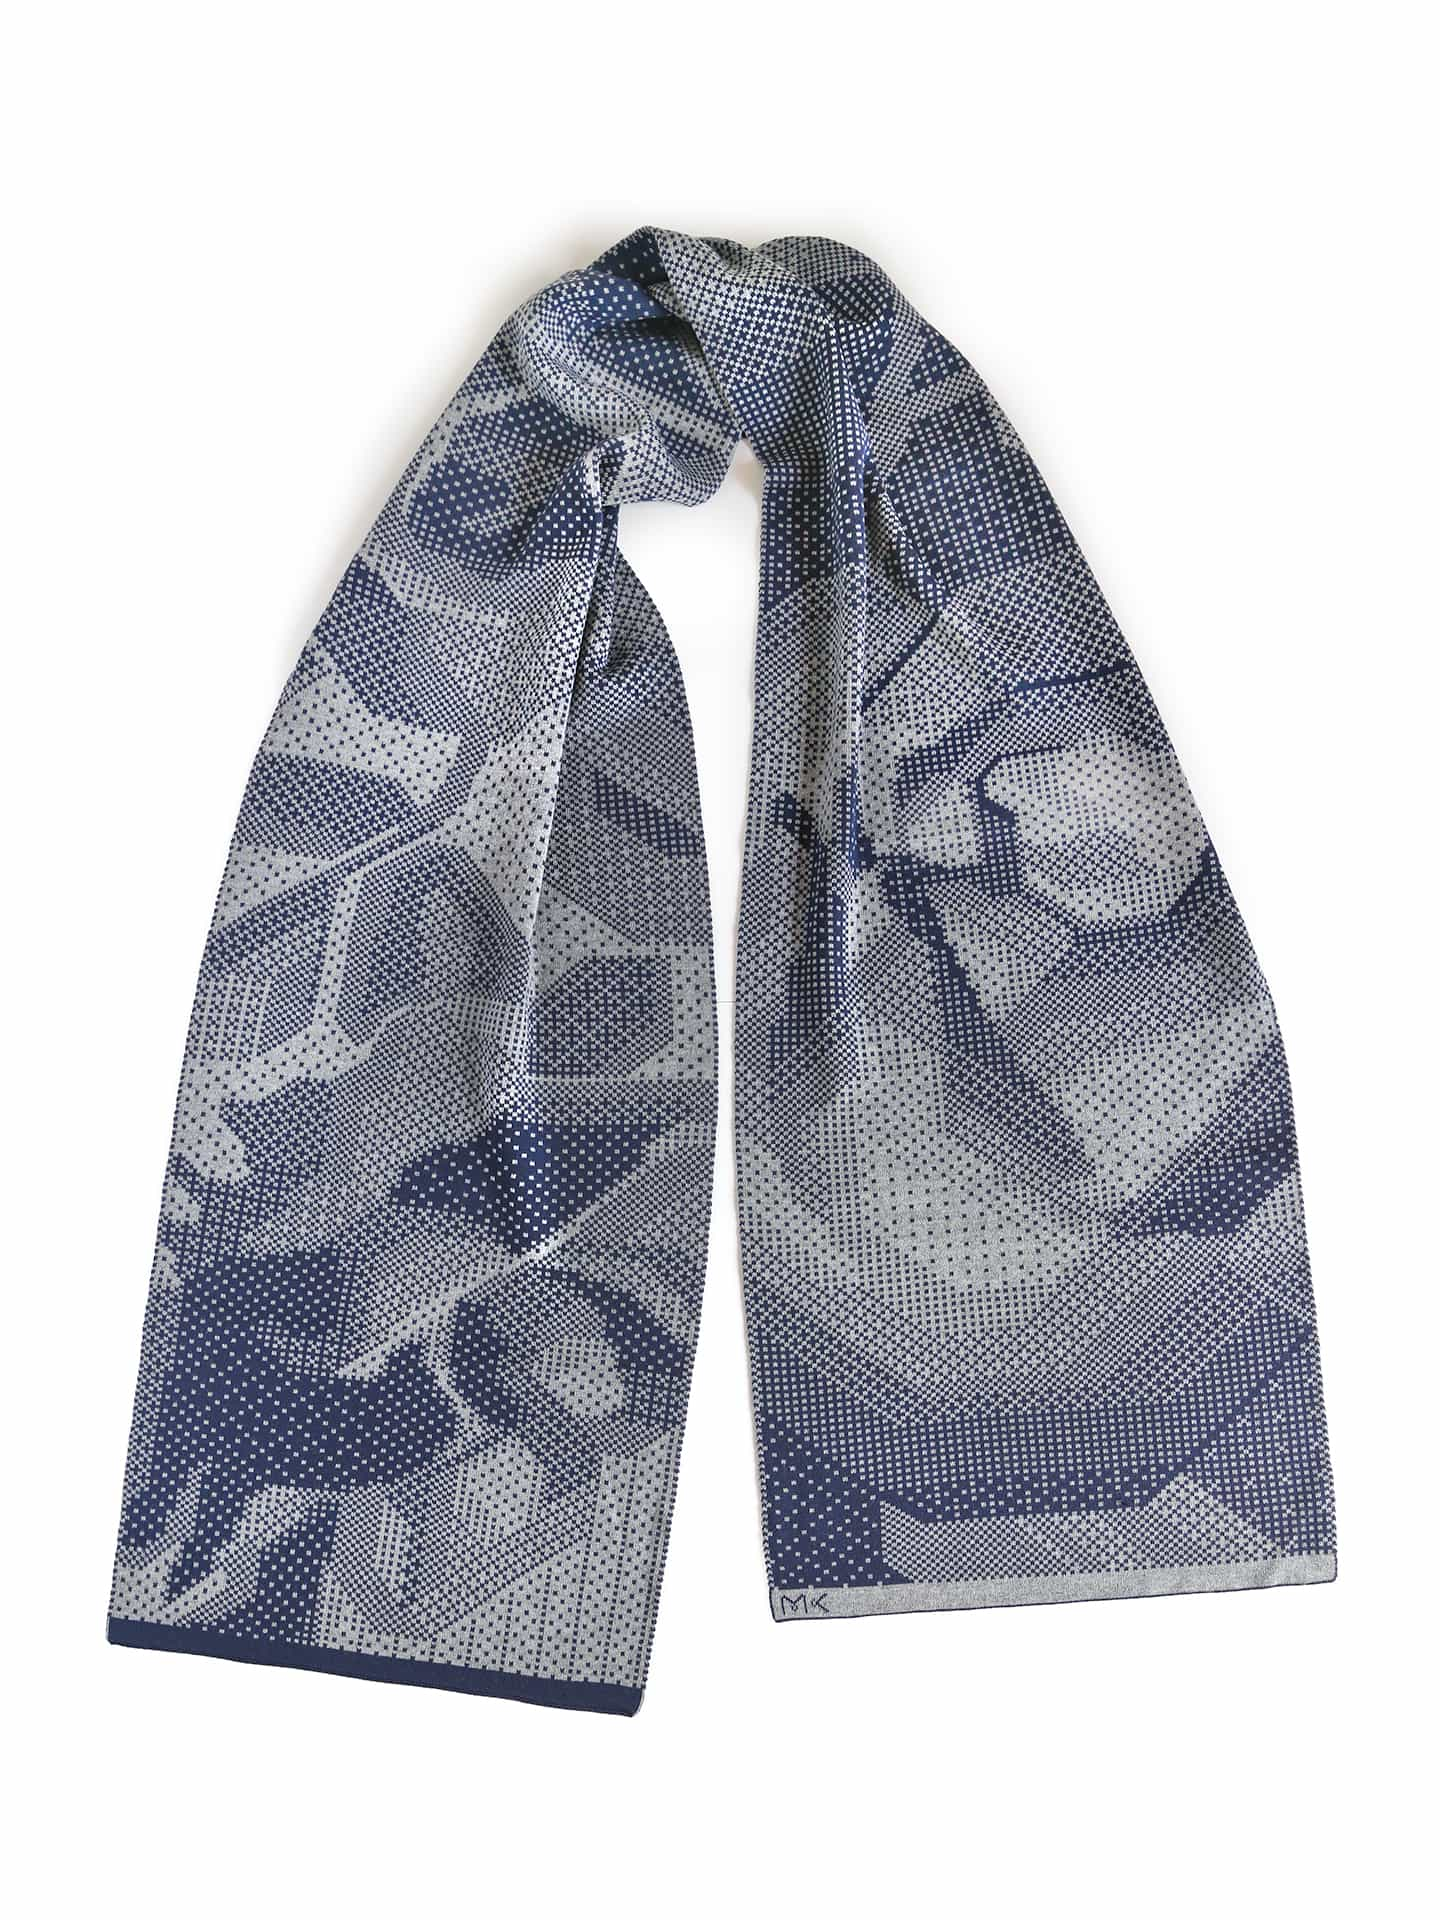 Pixelated Roses Scarf - Light Grey & Marine Blue